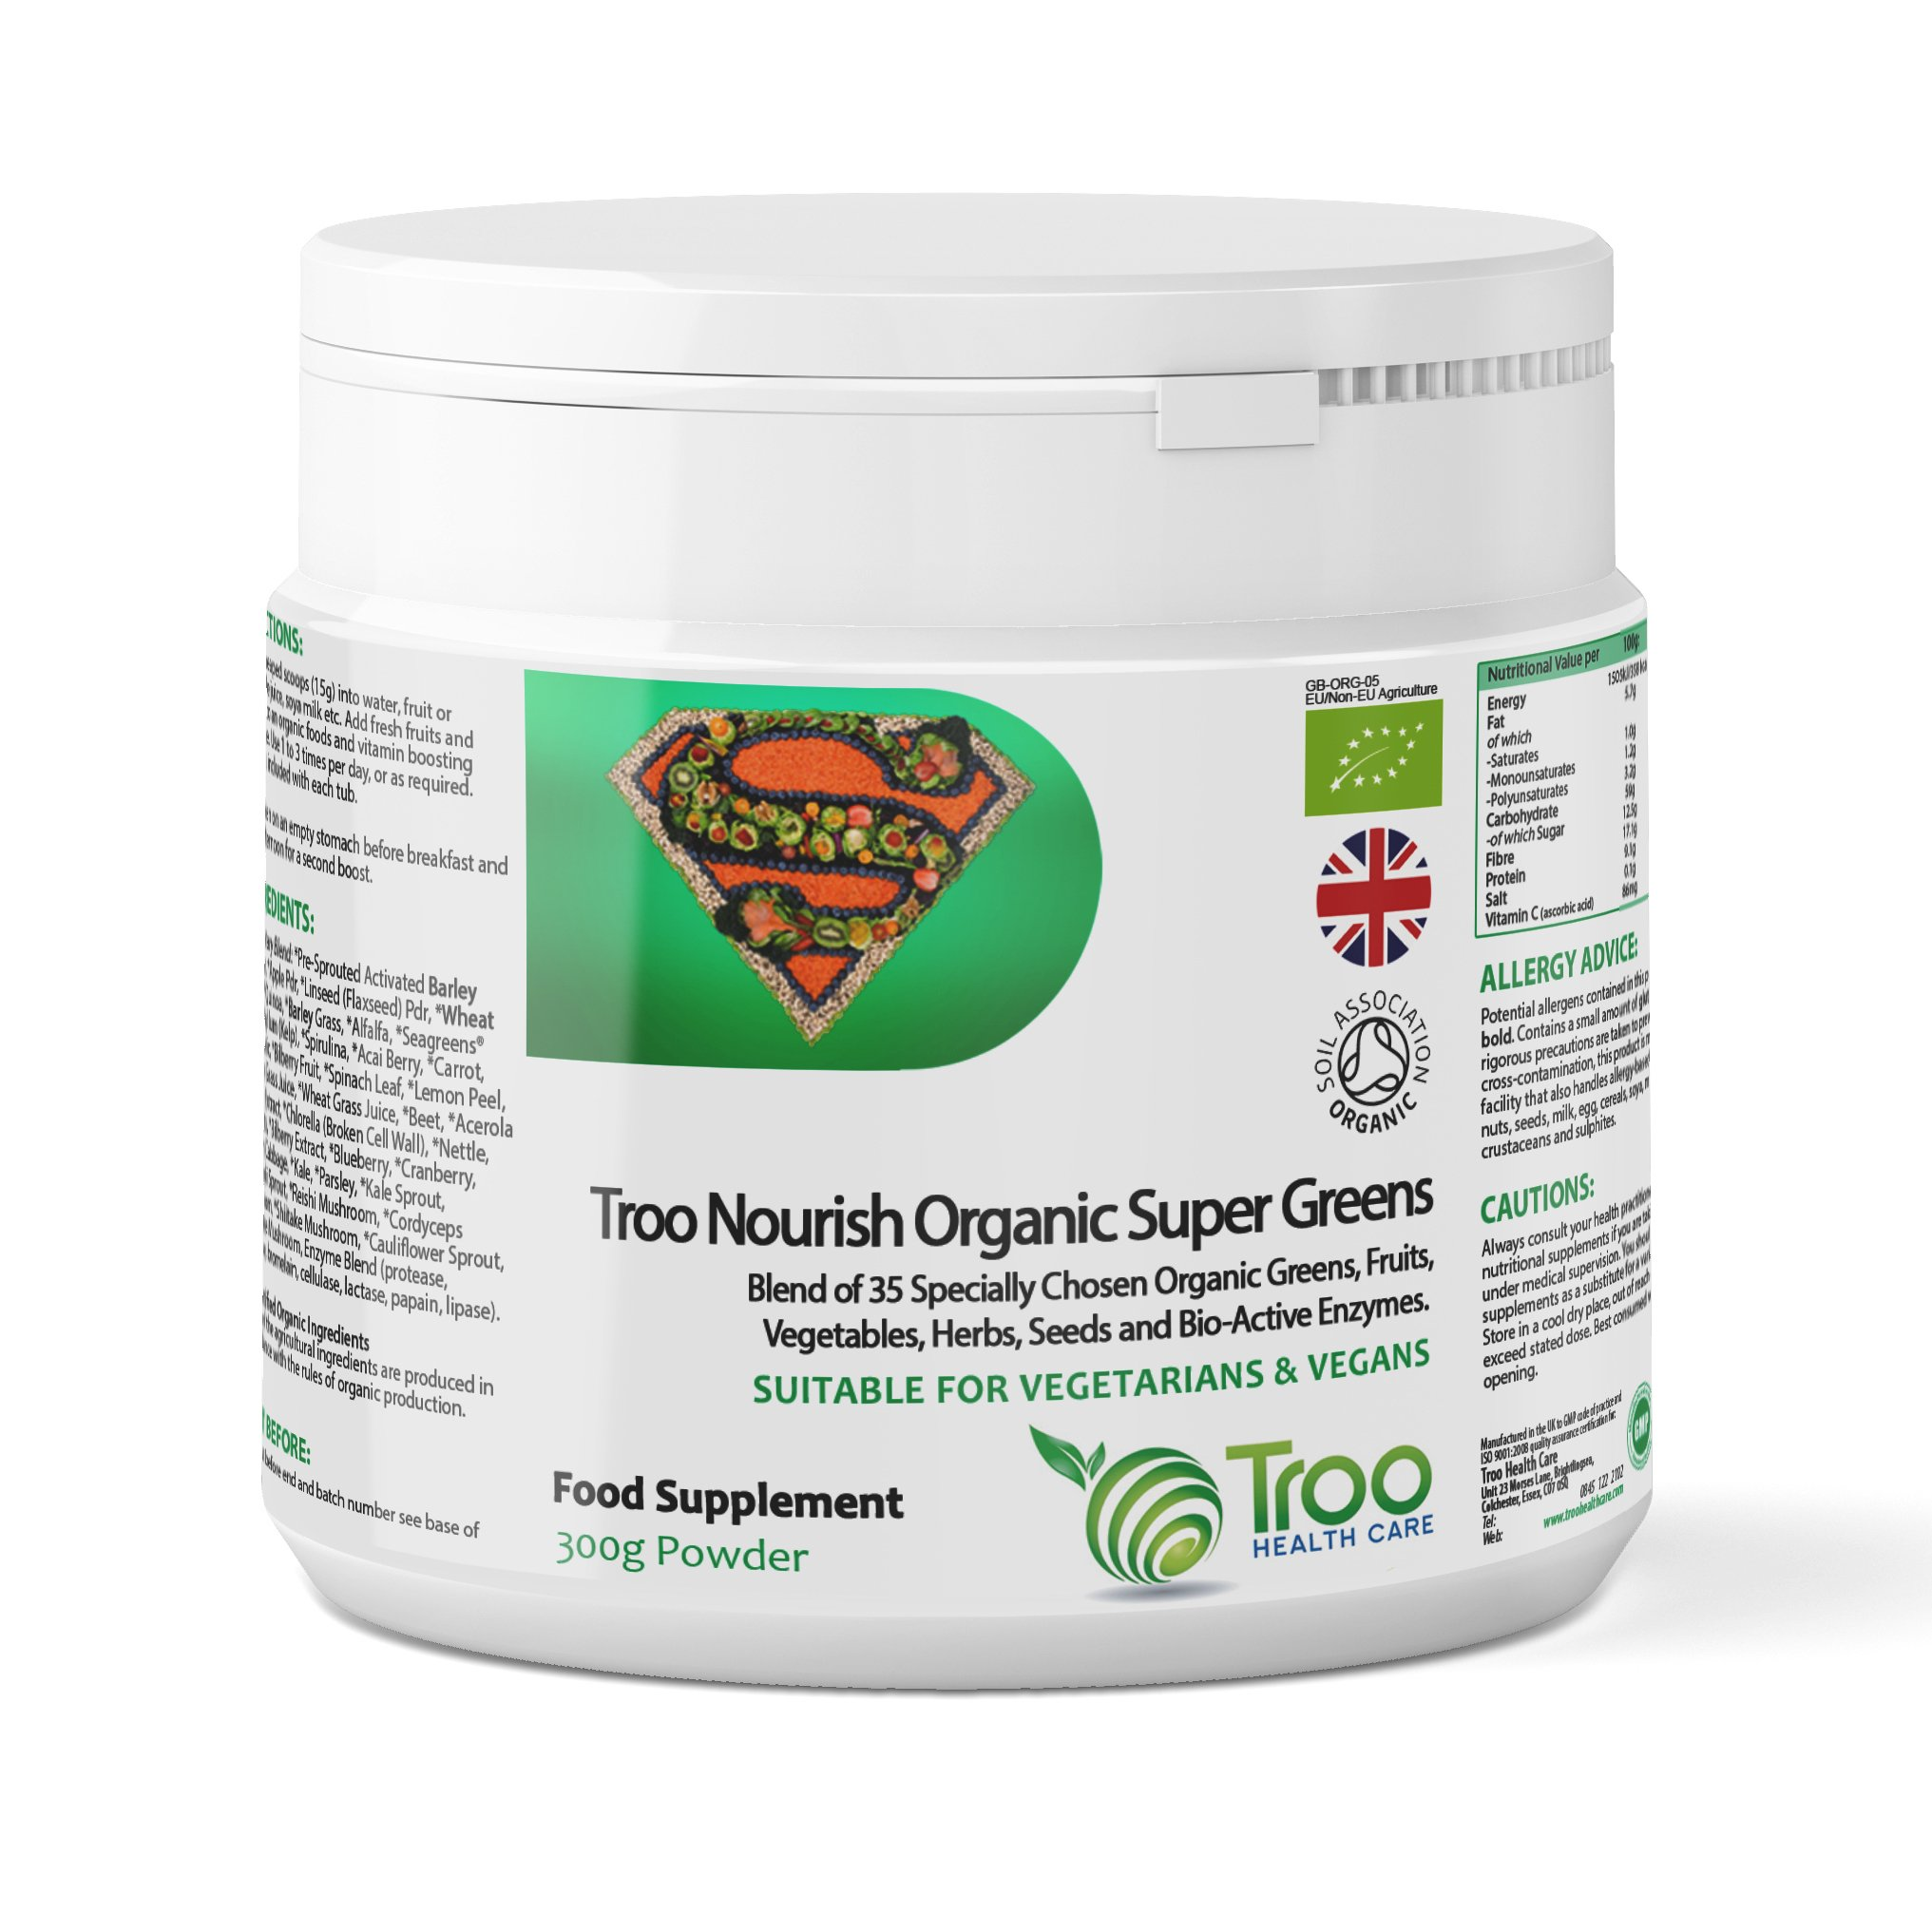 Organic Troo Nourish Supers 300g Powder - Superfood Nutritional Supplement | Wheatgrass | Barley Grass | Quinoa | Spirulina | Seagreens Ascophyllum Kelp | UK Manufactured to GMP Standards product image